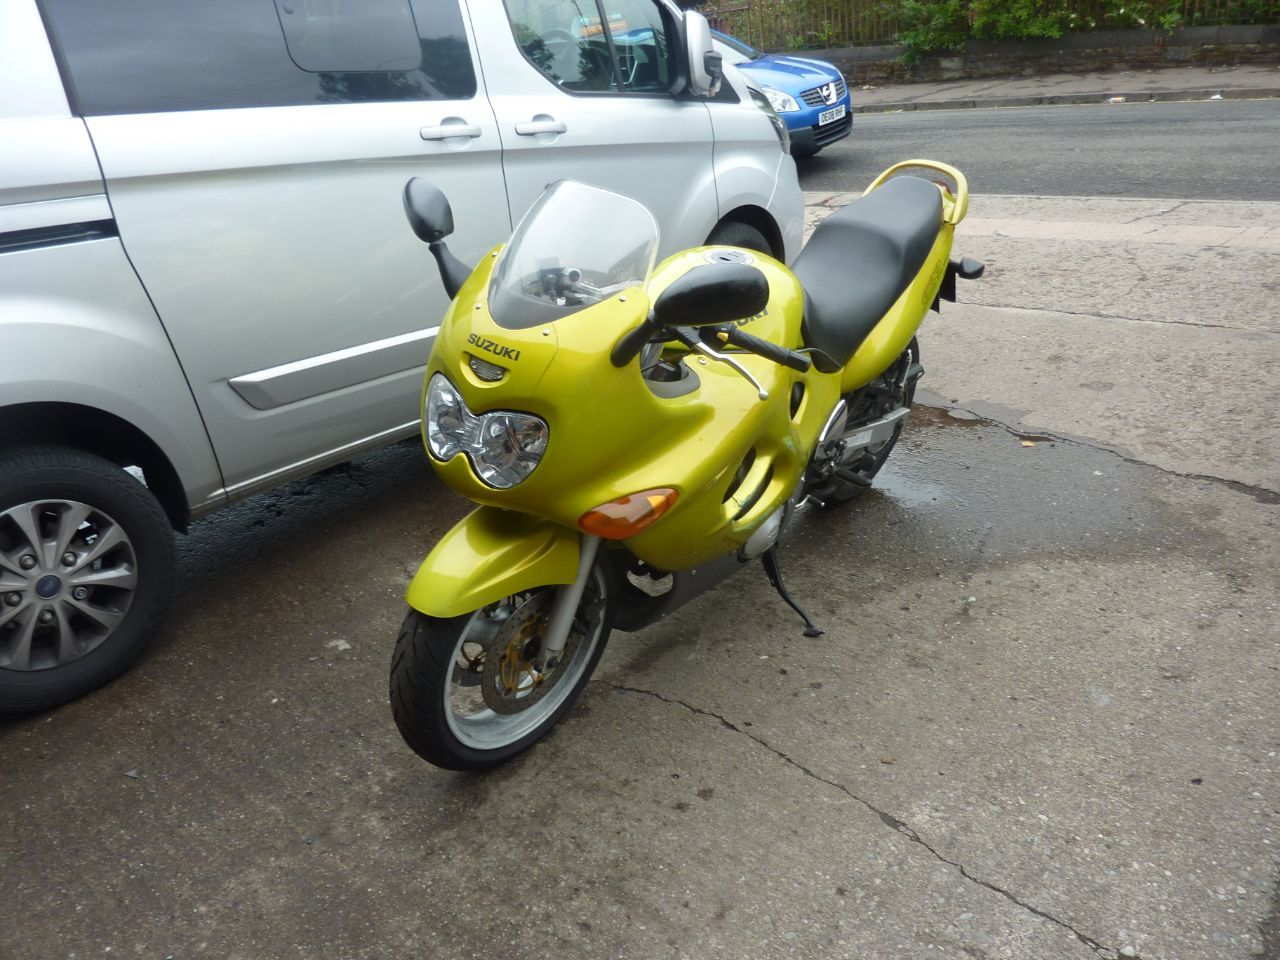 Suzuki GSX600 MOTORCYCLE 600 Sports Tourer Petrol YELLOW at J & C Car Sales Glasgow